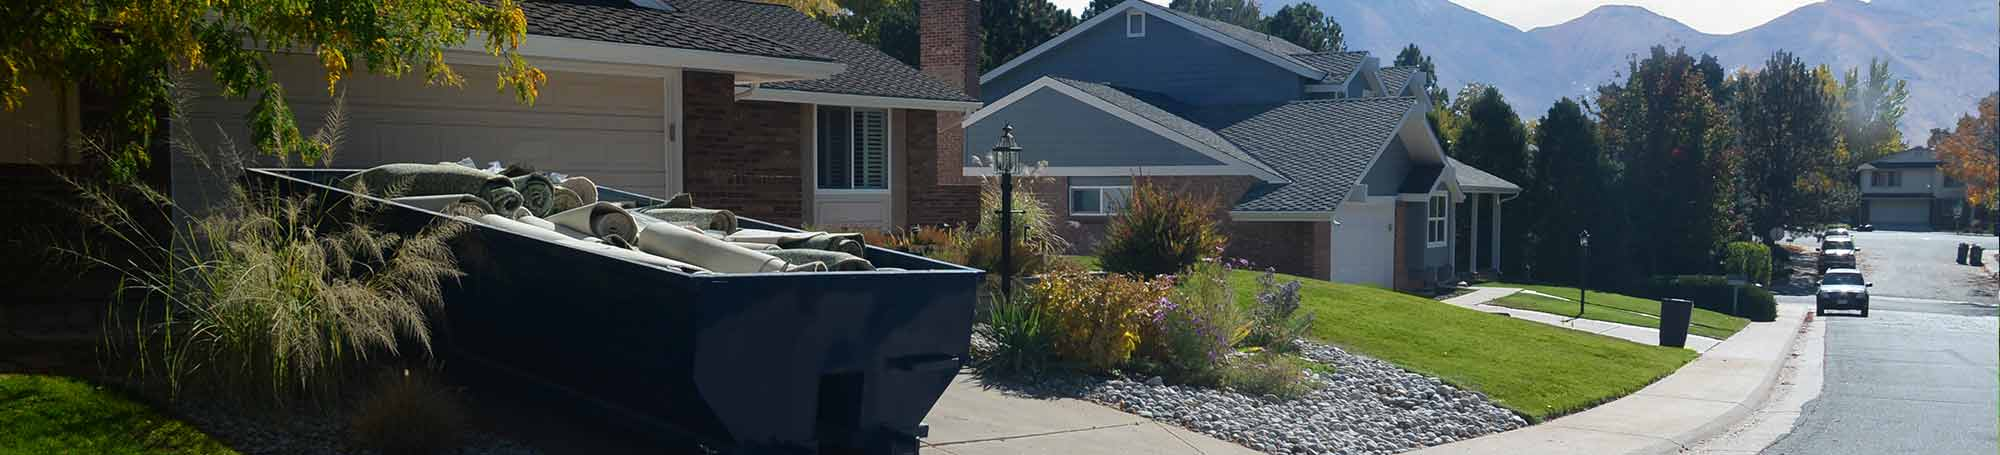 Roll Off Dumpster in Residential Driveway Next to Brick House.